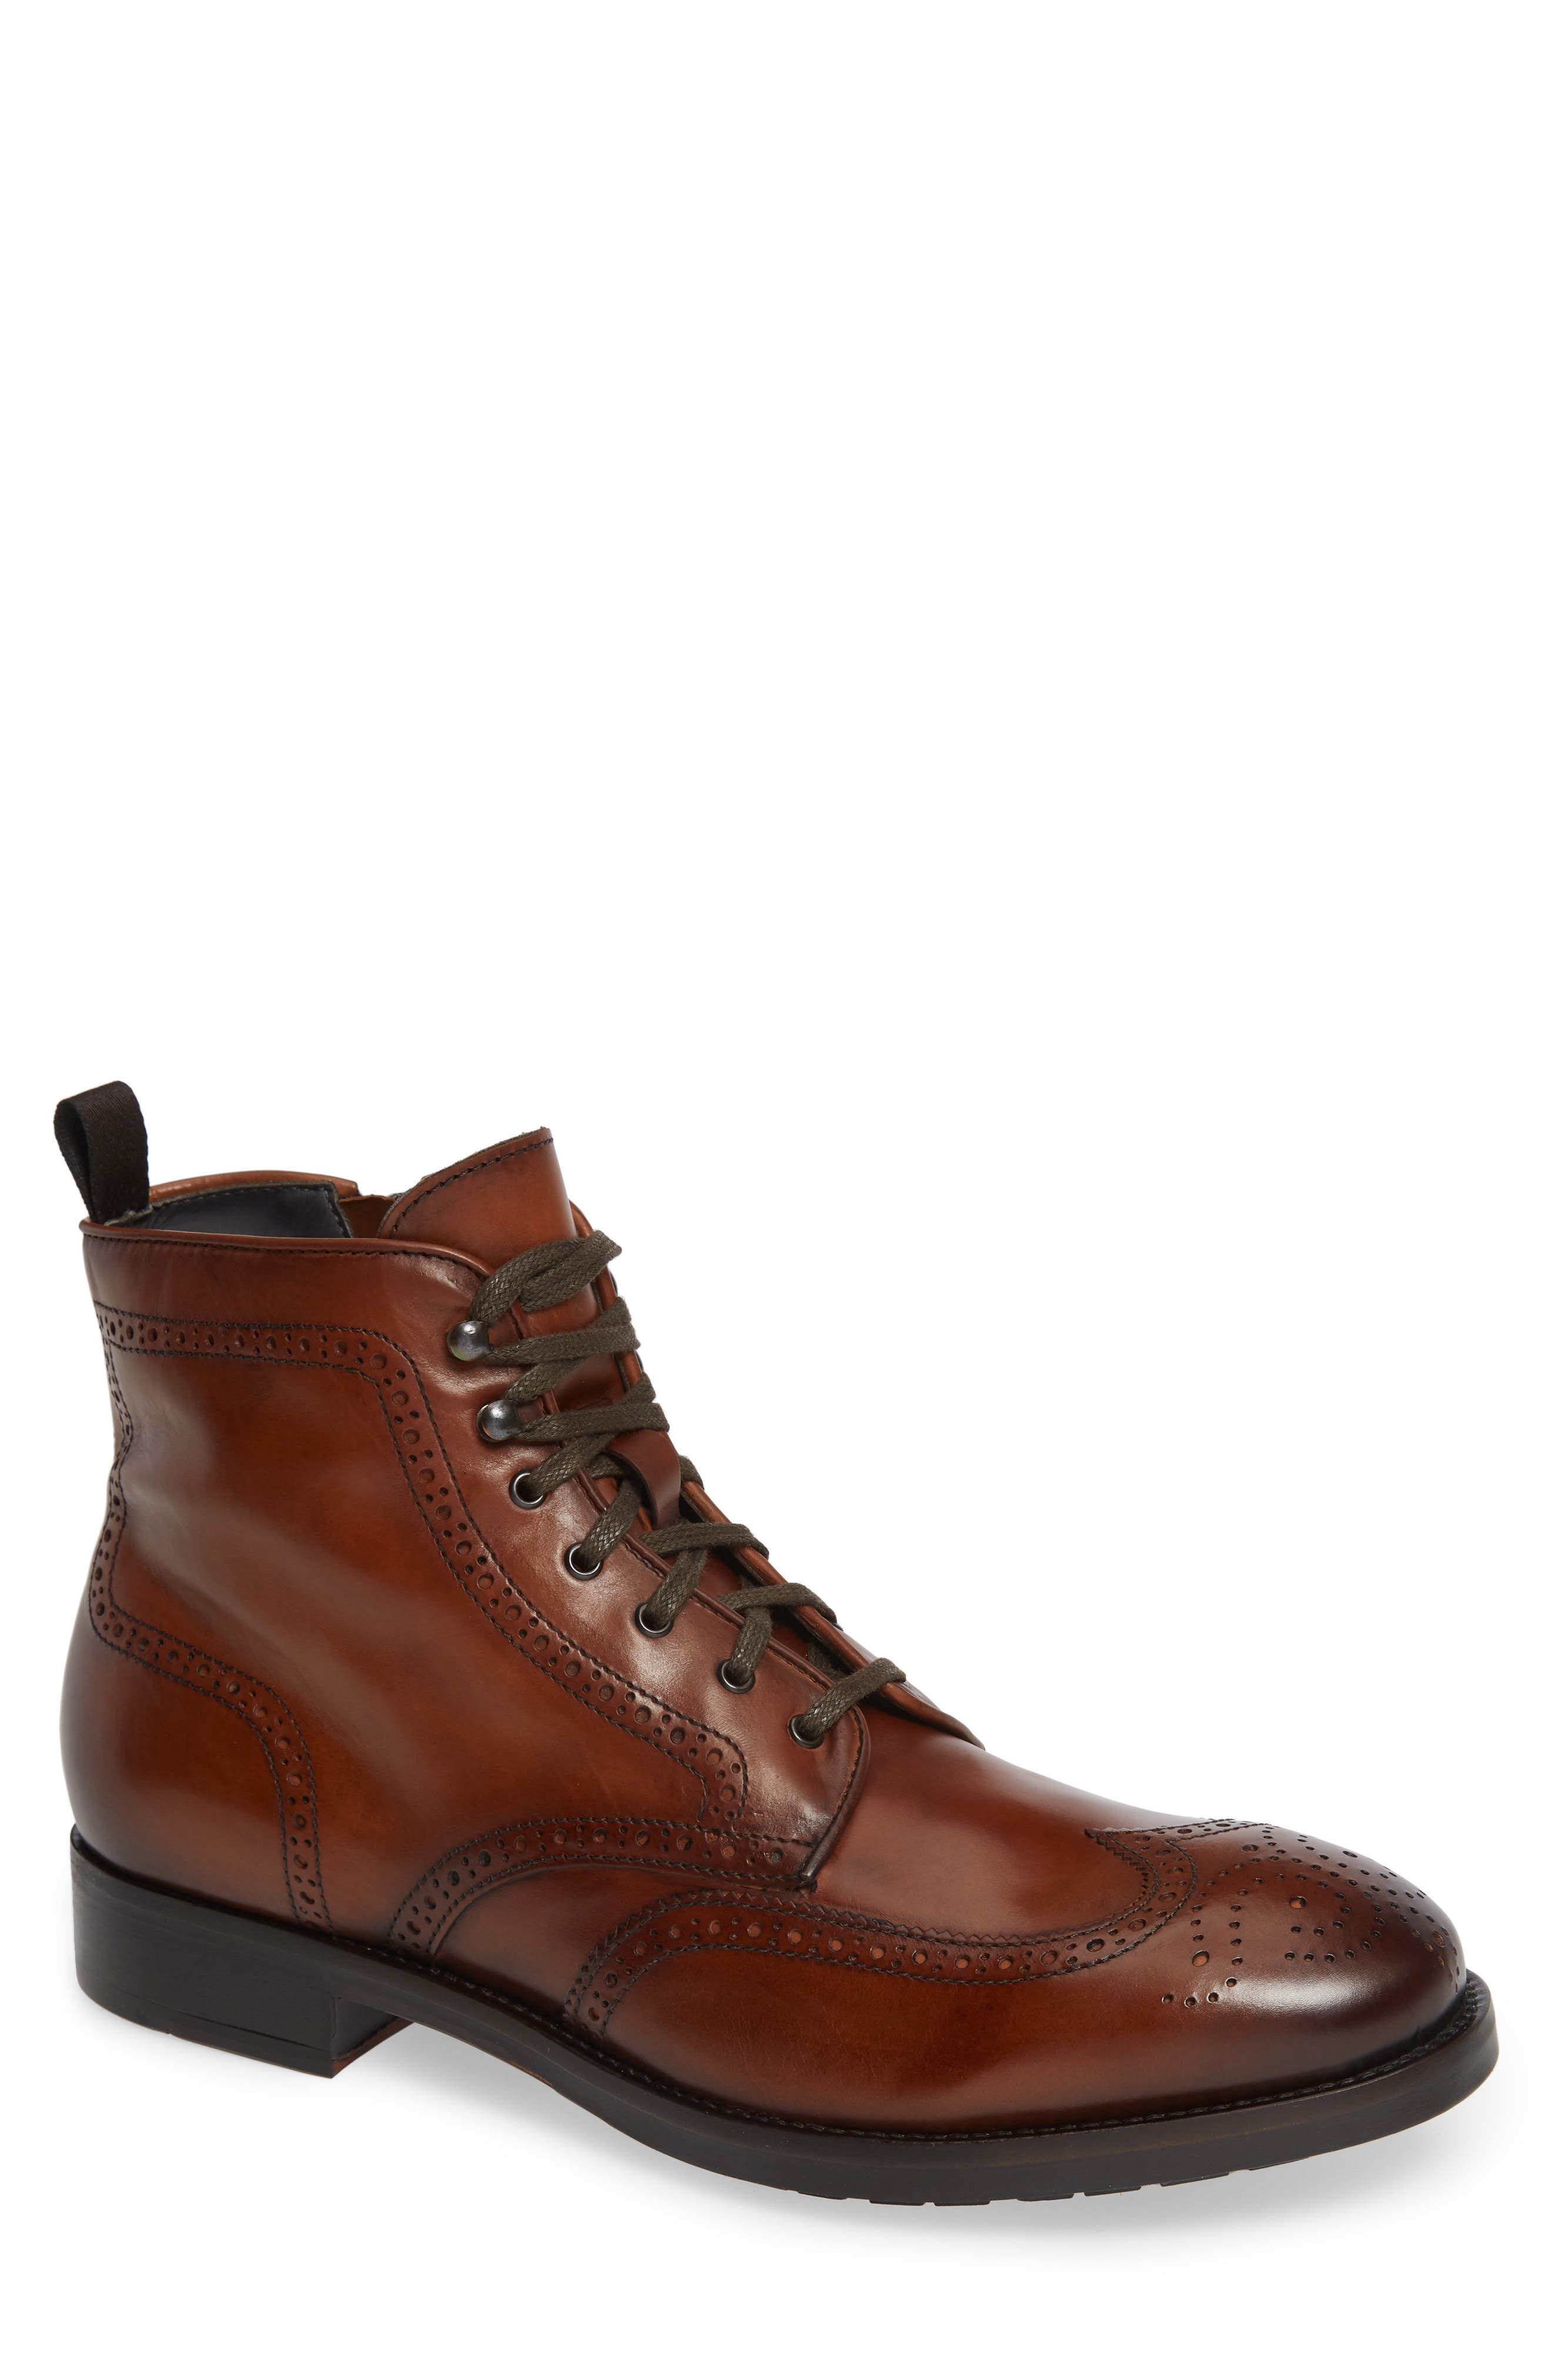 Auckland Wingtip Boot,                         Main,                         color, BROWN LEATHER